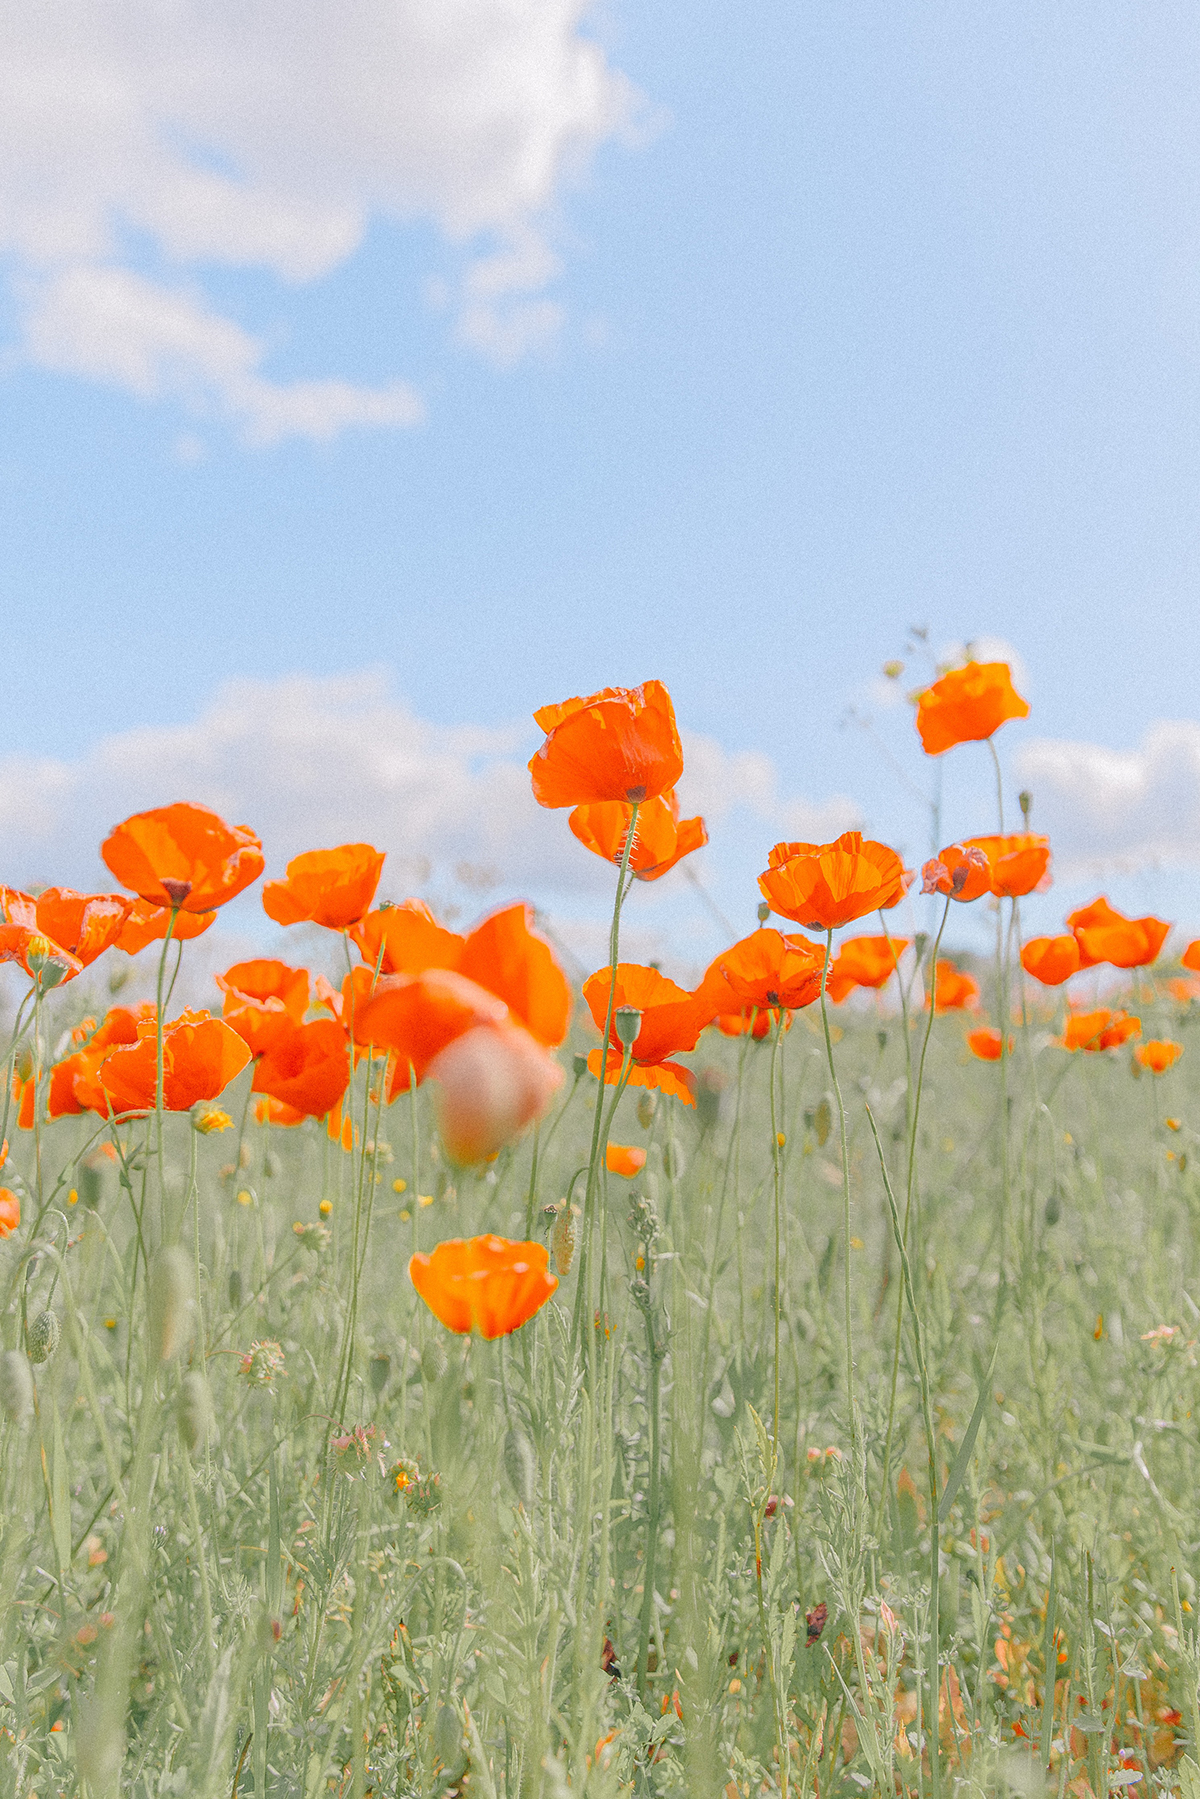 Photo by Teresa Freitas of Portuguese flower field